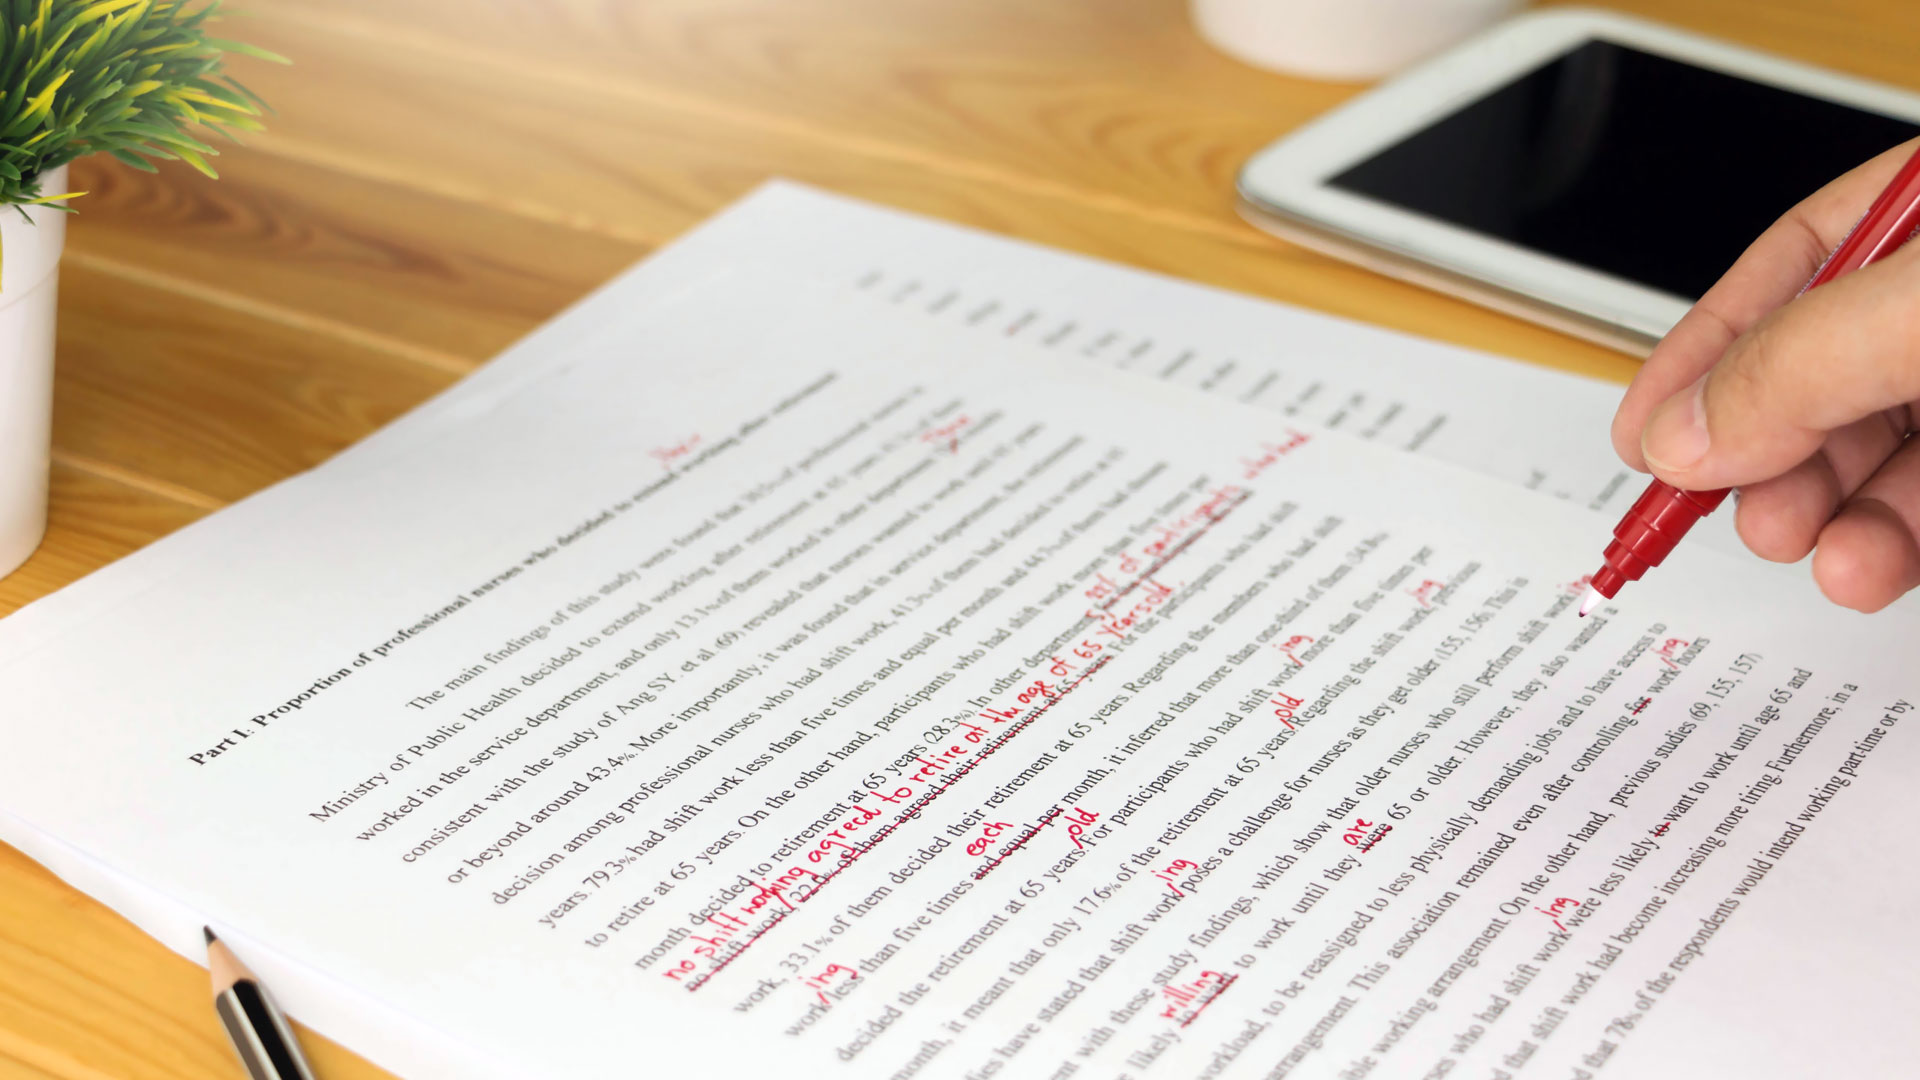 Grammar Checking and Proofreading Tools